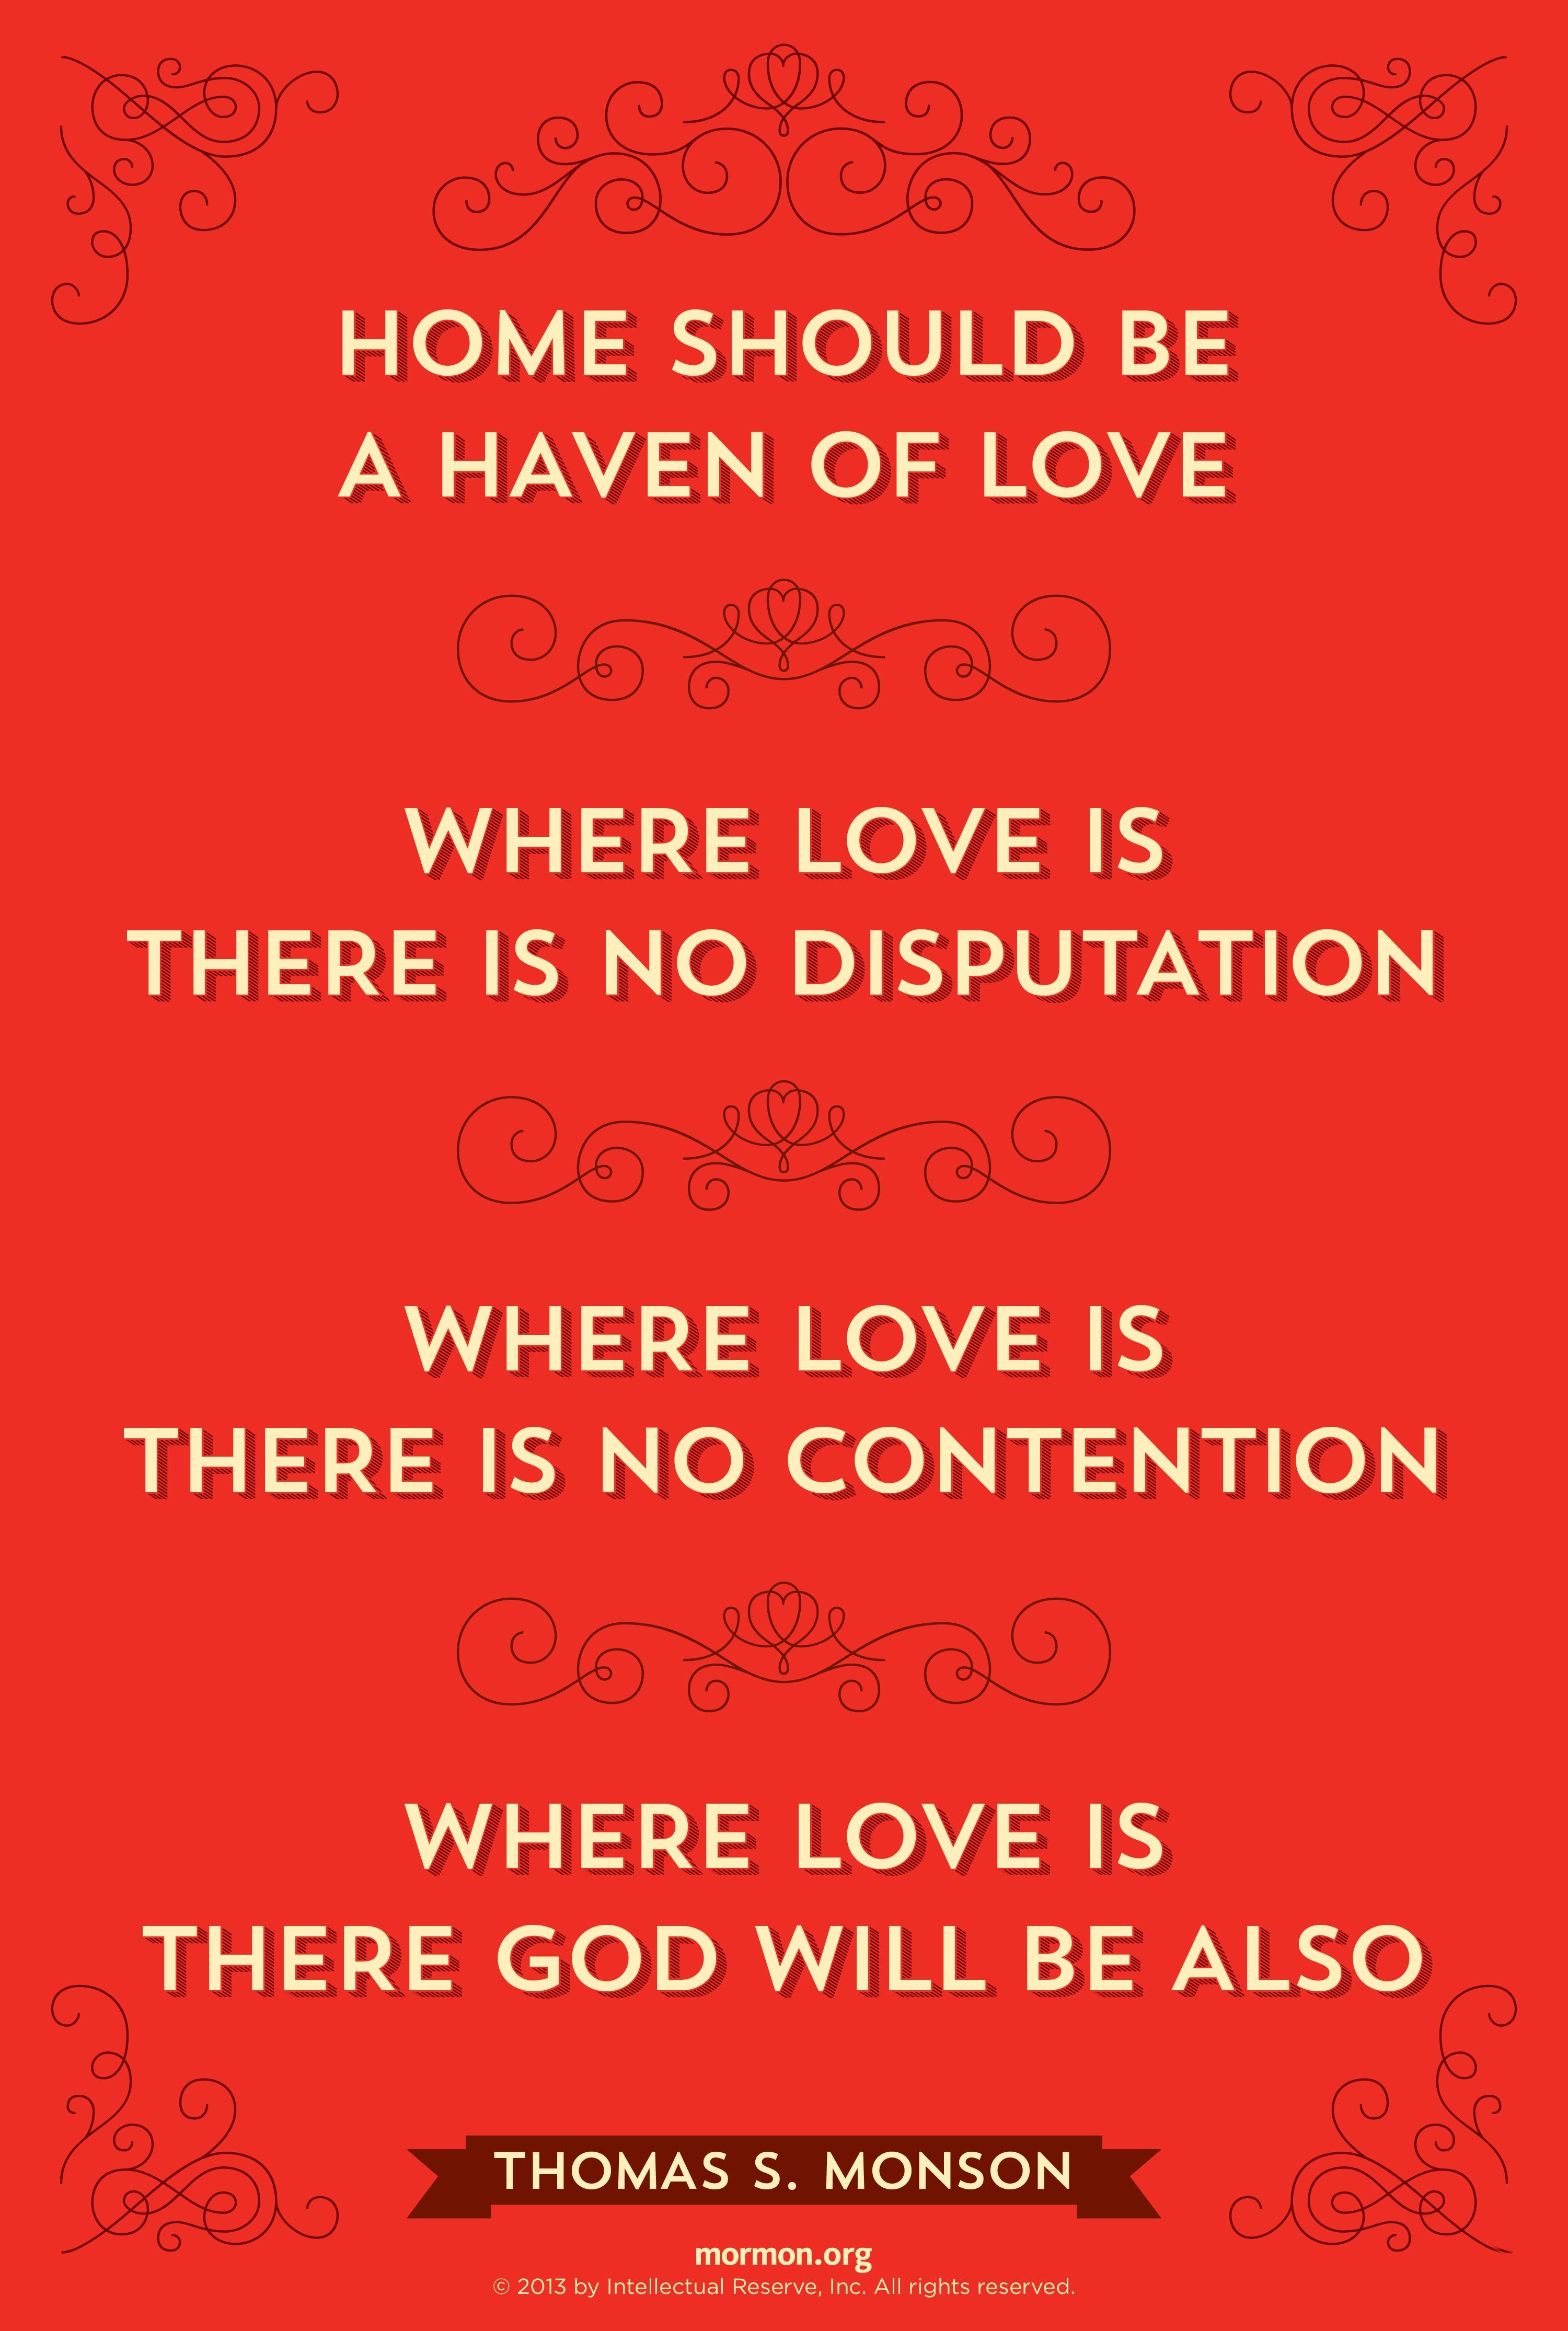 """""""Home should be a haven of love. Where love is, there is no disputation. Where love is, there is no contention. Where love is, there God will be also.""""—President Thomas S. Monson, """"The Doorway of Love"""""""